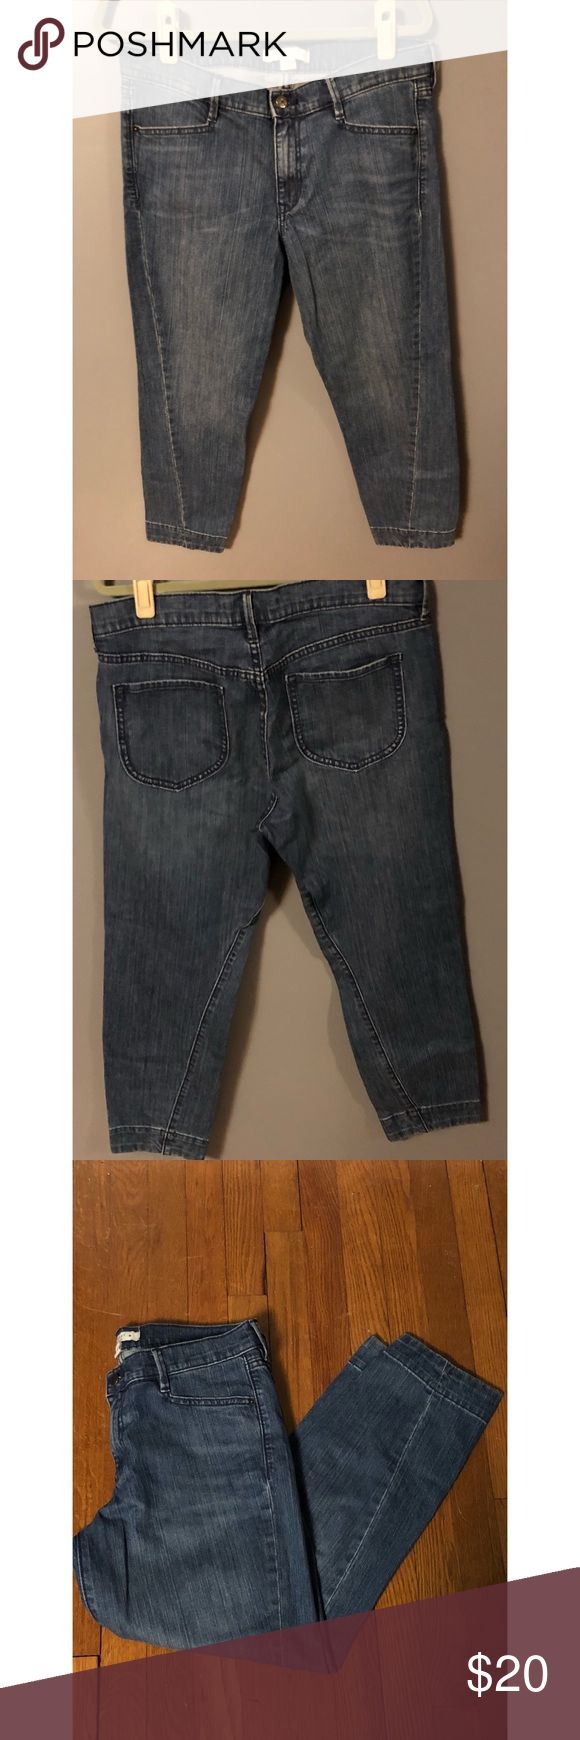 Old Nav Ankle Jeans Ankle jeans. Super cuter. Preloved and in great condition!! Inseam approx 27 inches Old Navy Jeans Ankle & Cropped